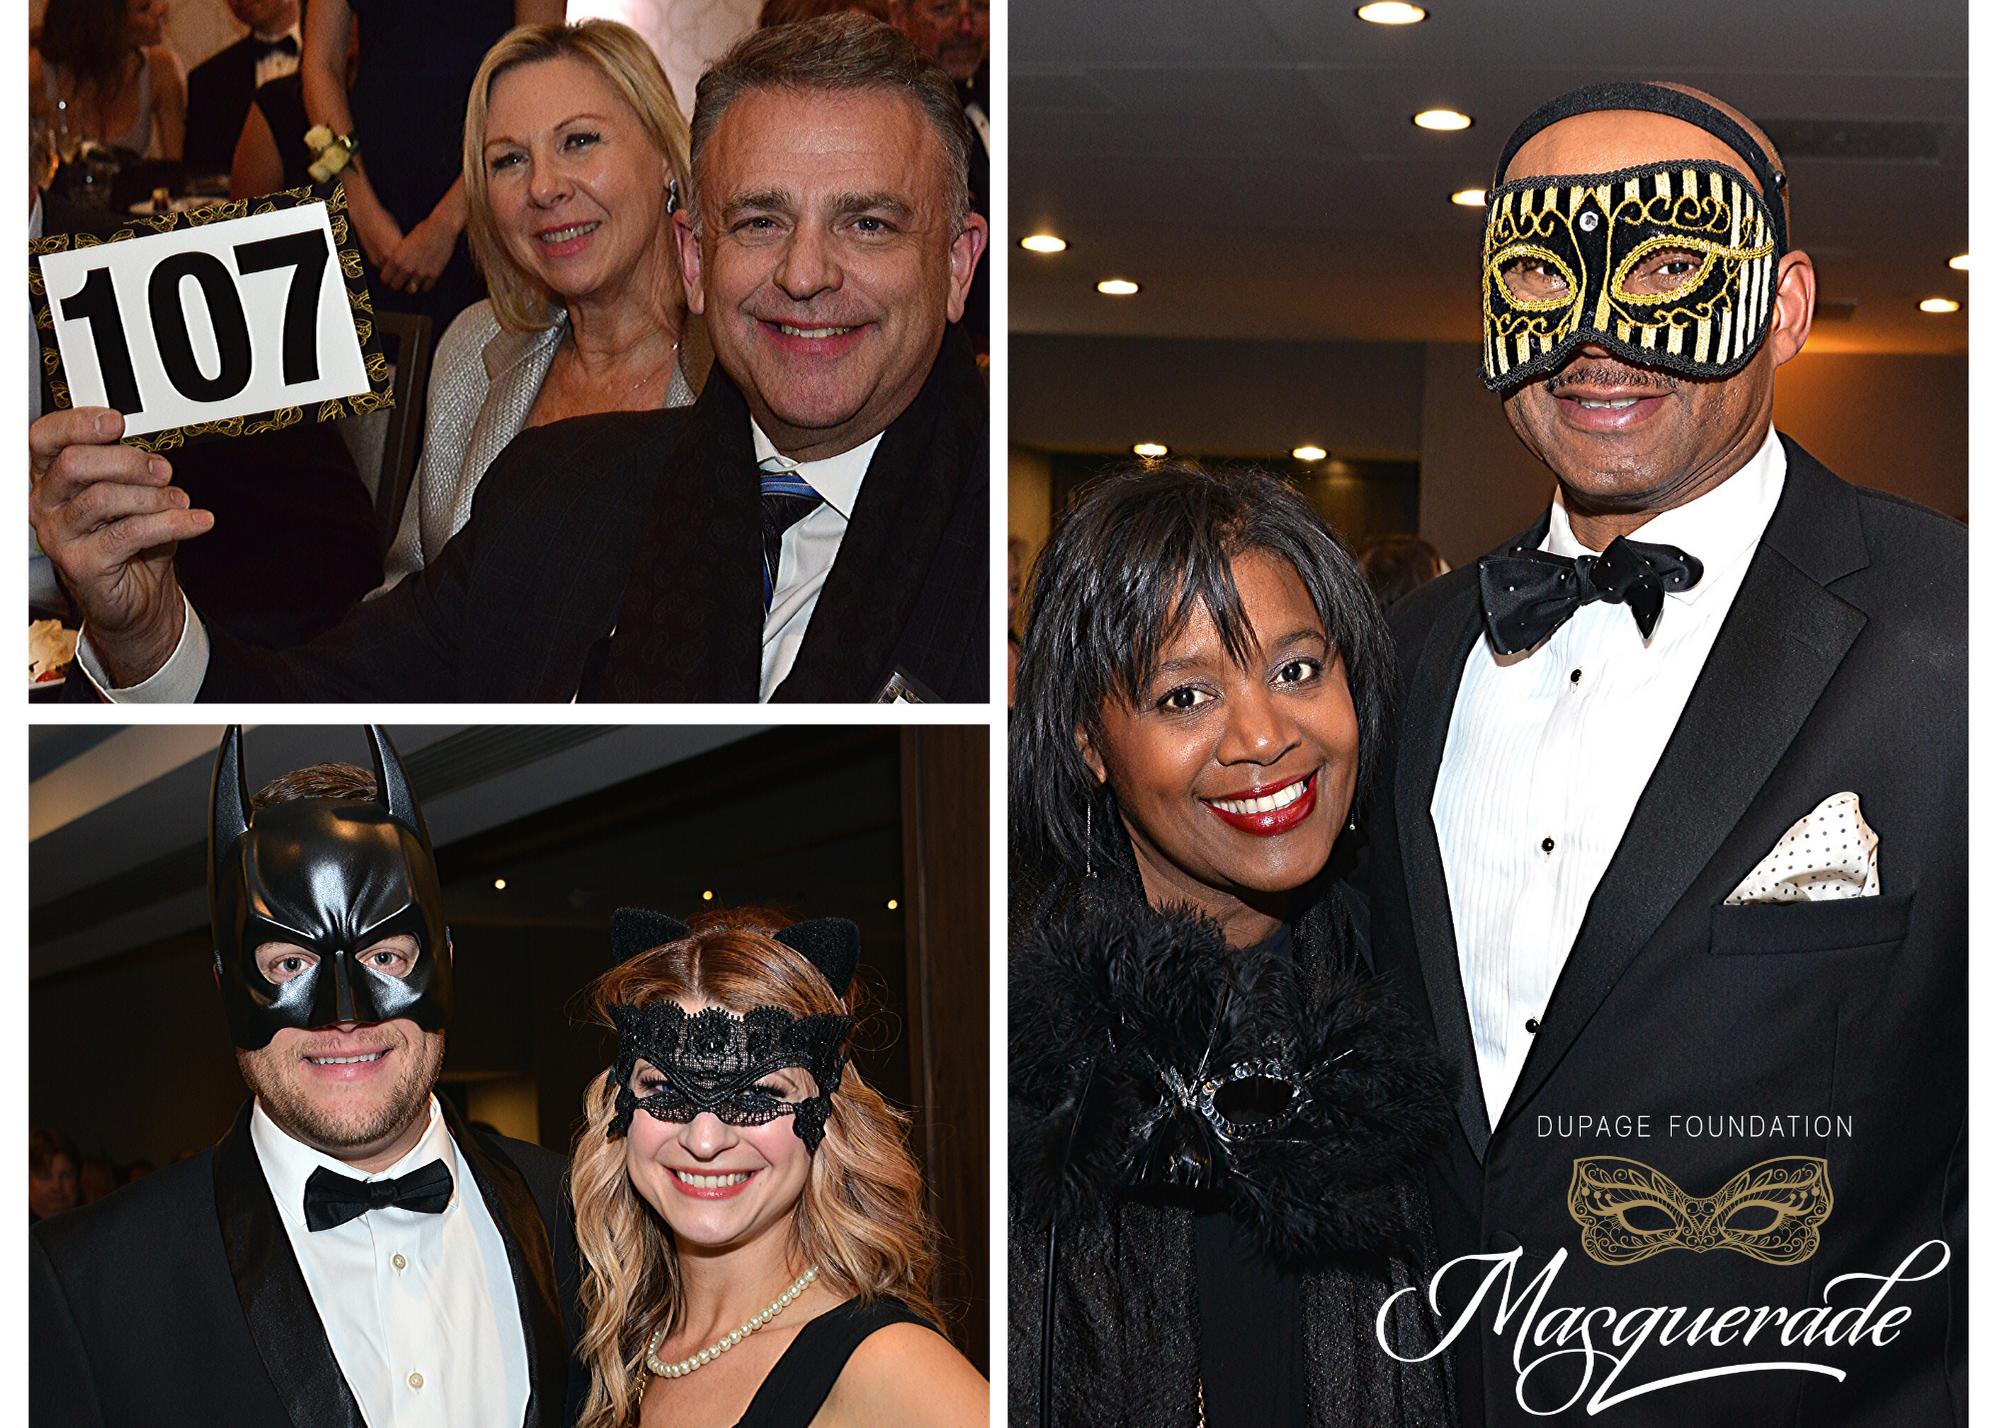 DuPage Foundation Masquerade Benefit Raises Nearly $450,000 While Unmasking Local Areas of Need